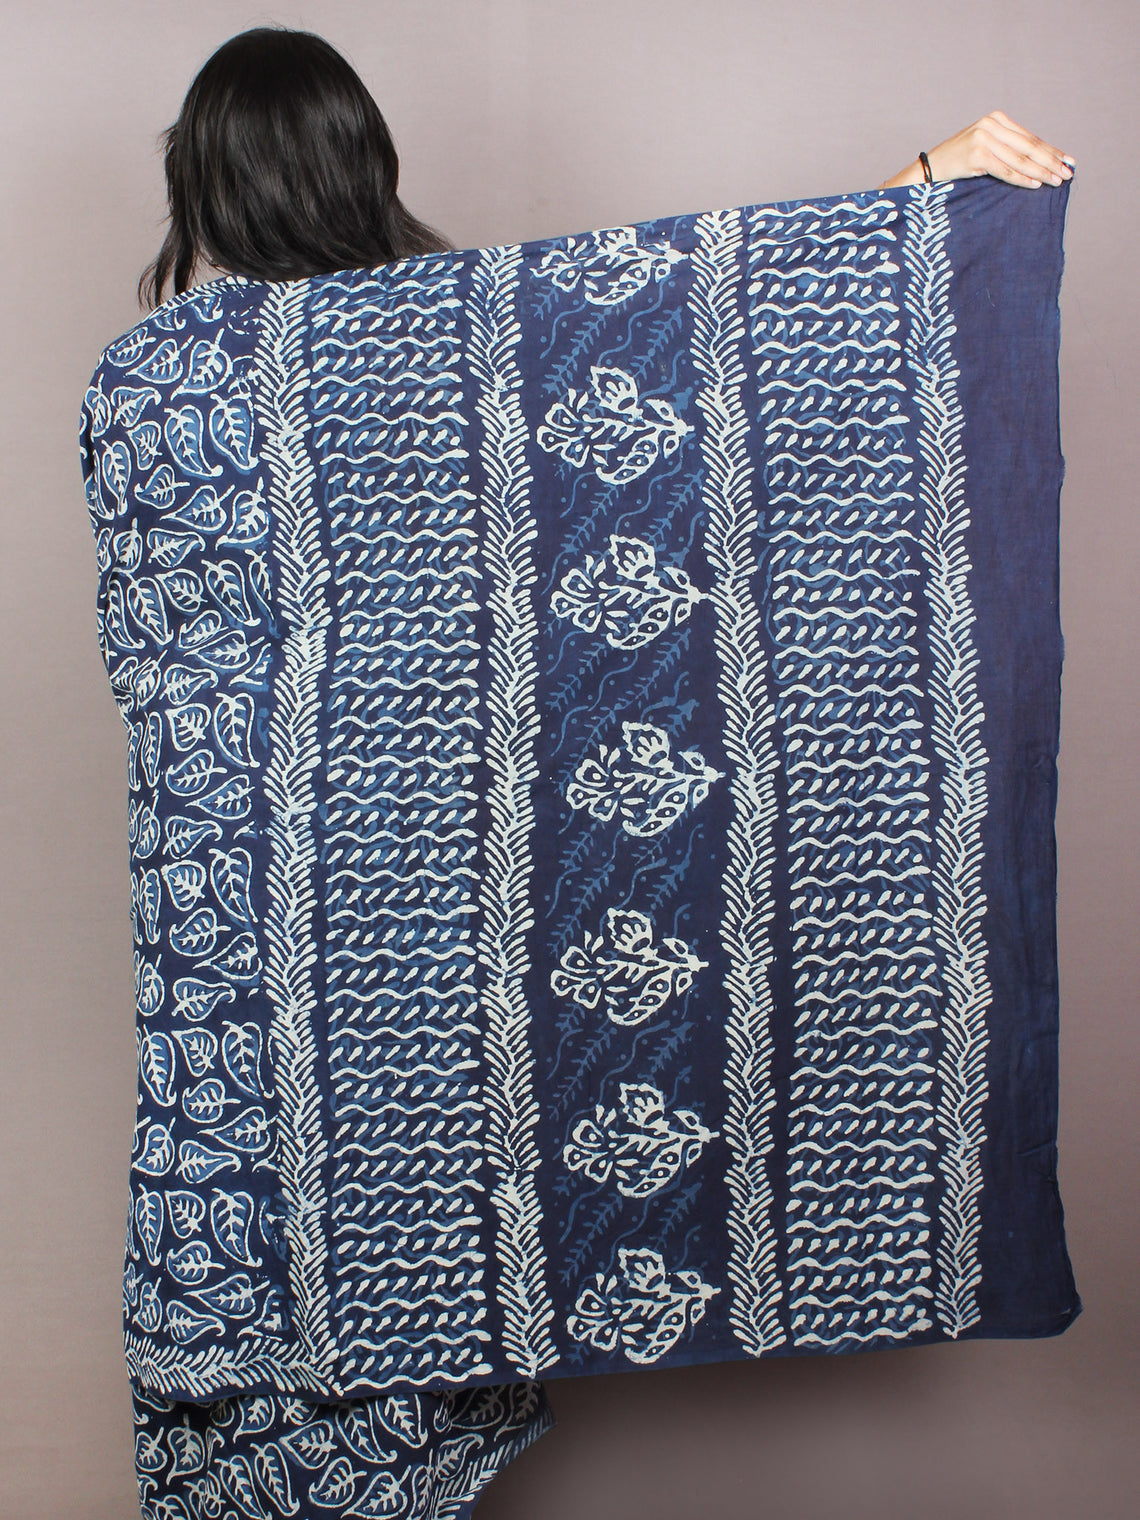 Indigo White Hand Block Printed Cotton Saree in Natural Colors - S03170830